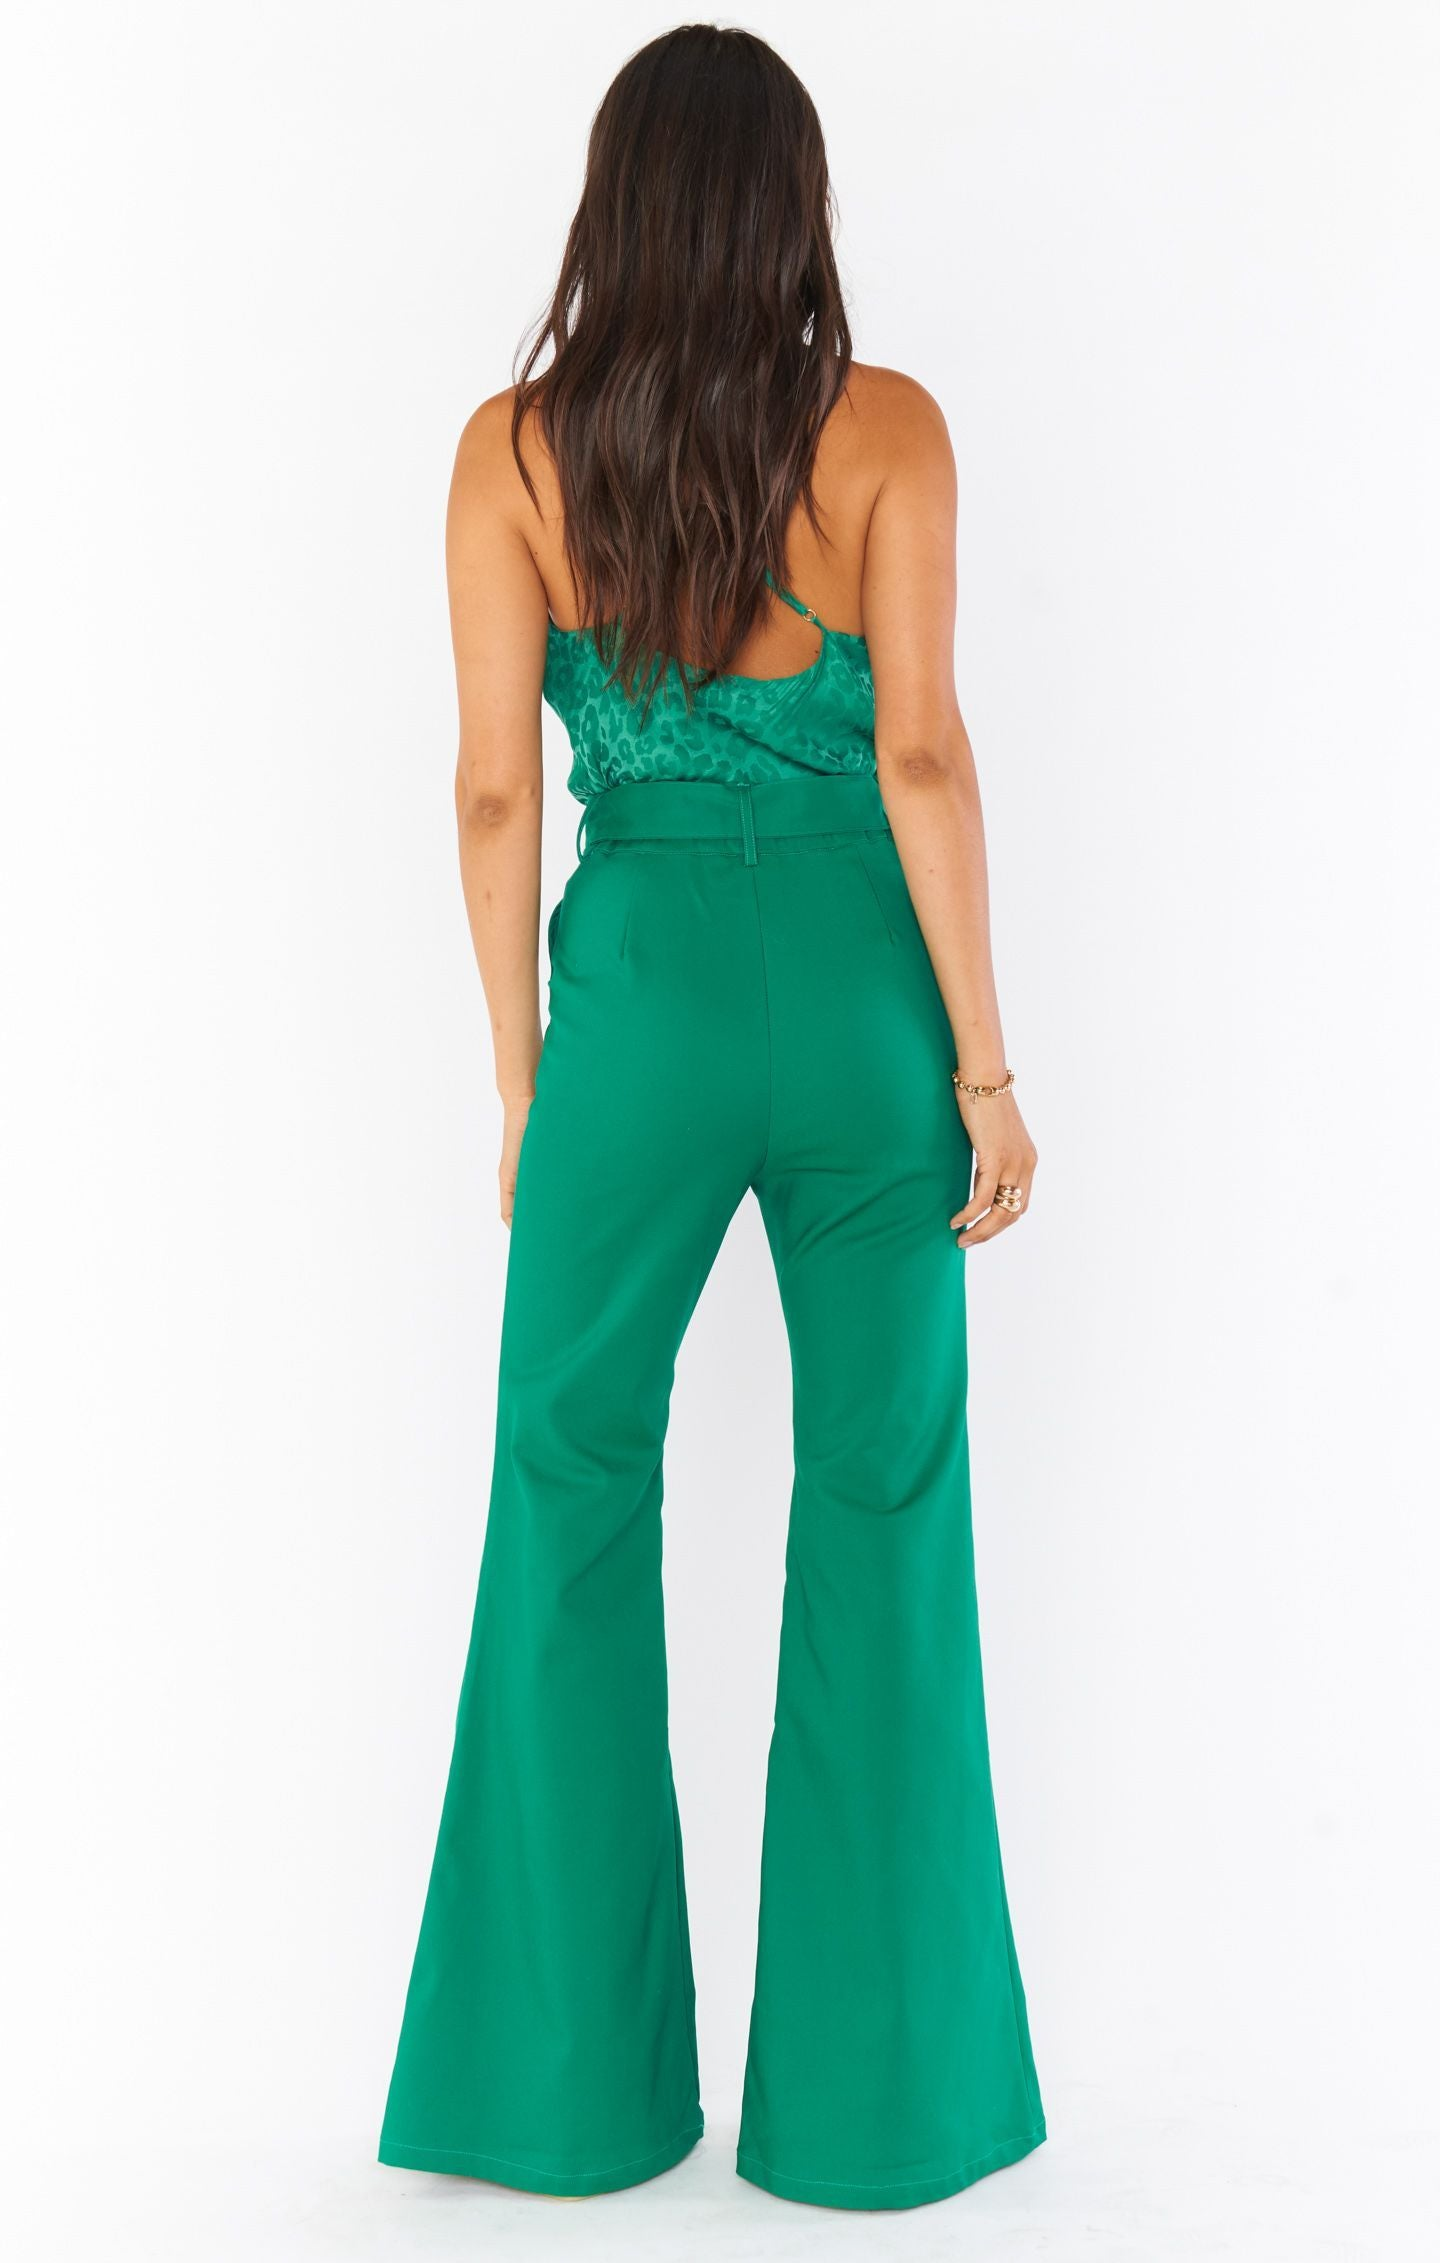 Load image into Gallery viewer, DJ Flare Pant - Green Suiting | Show Me Your Mumu - Holiday/Resort 2020 | Women's Bottoms